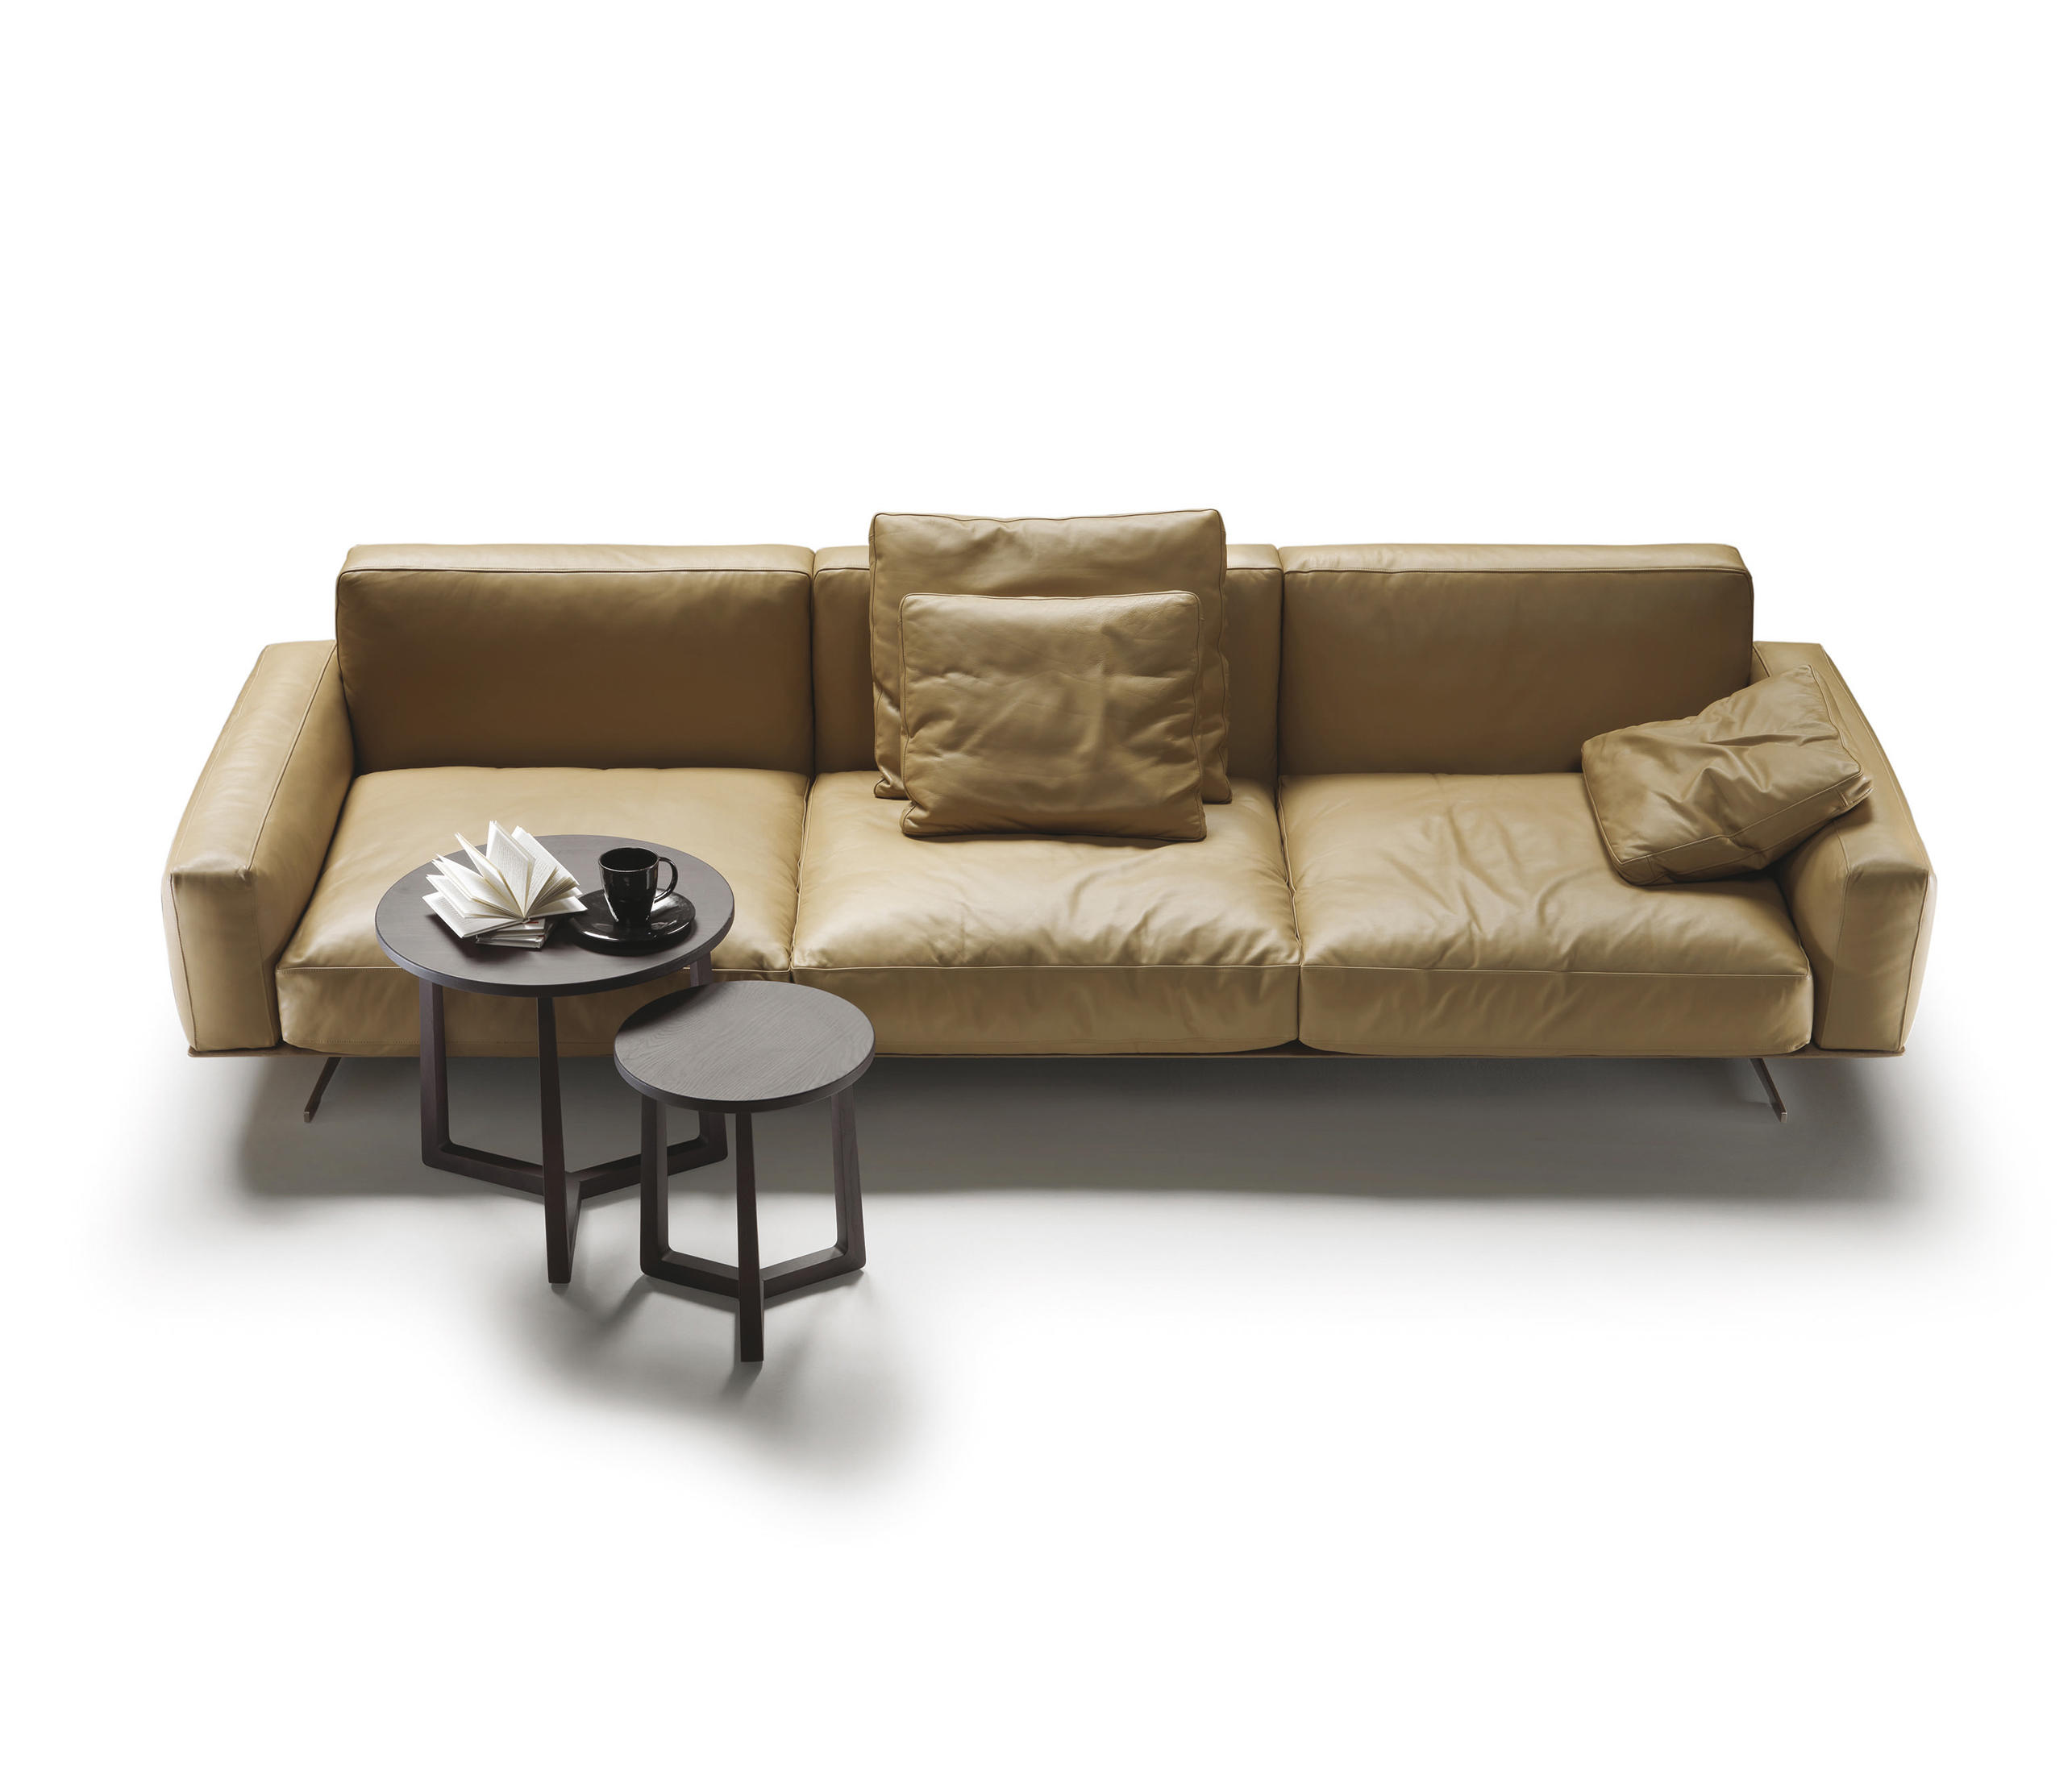 Sofa Dreams Outlet Soft Dream Large Sofas From Flexform Architonic